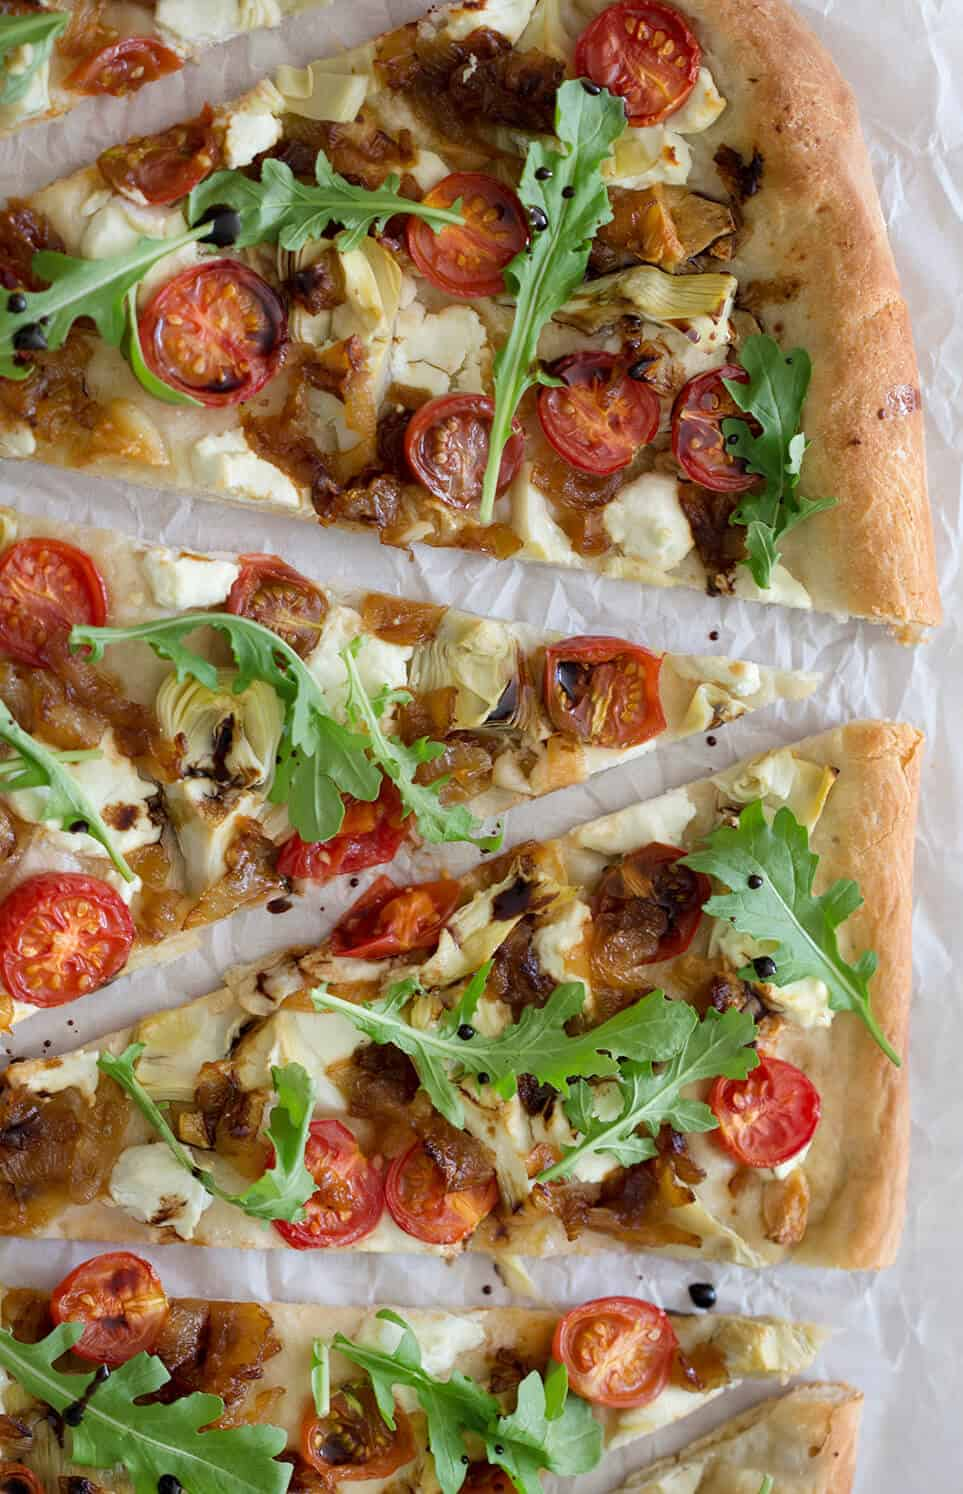 Slices of a homemade artichoke pizza with cherry tomatoes and arugula on top.